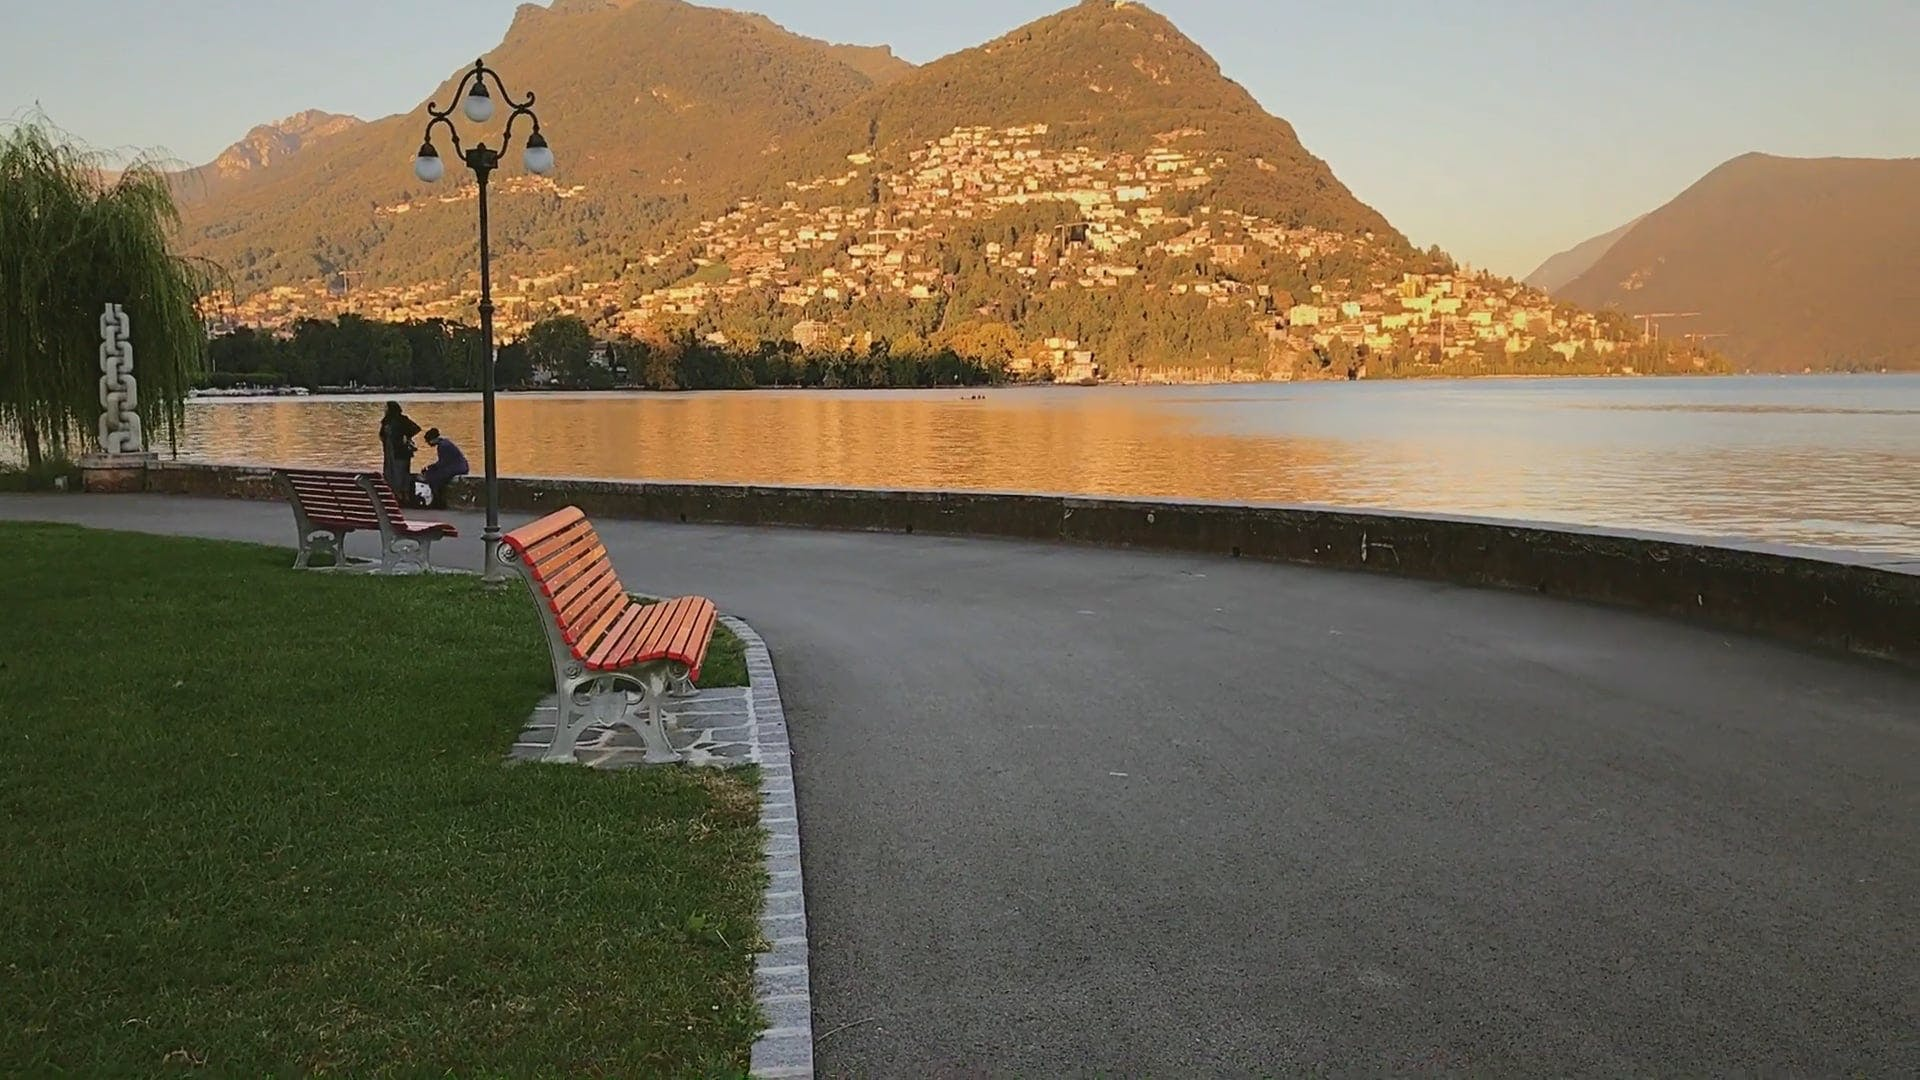 Park With A View Of The Lake And Mountains